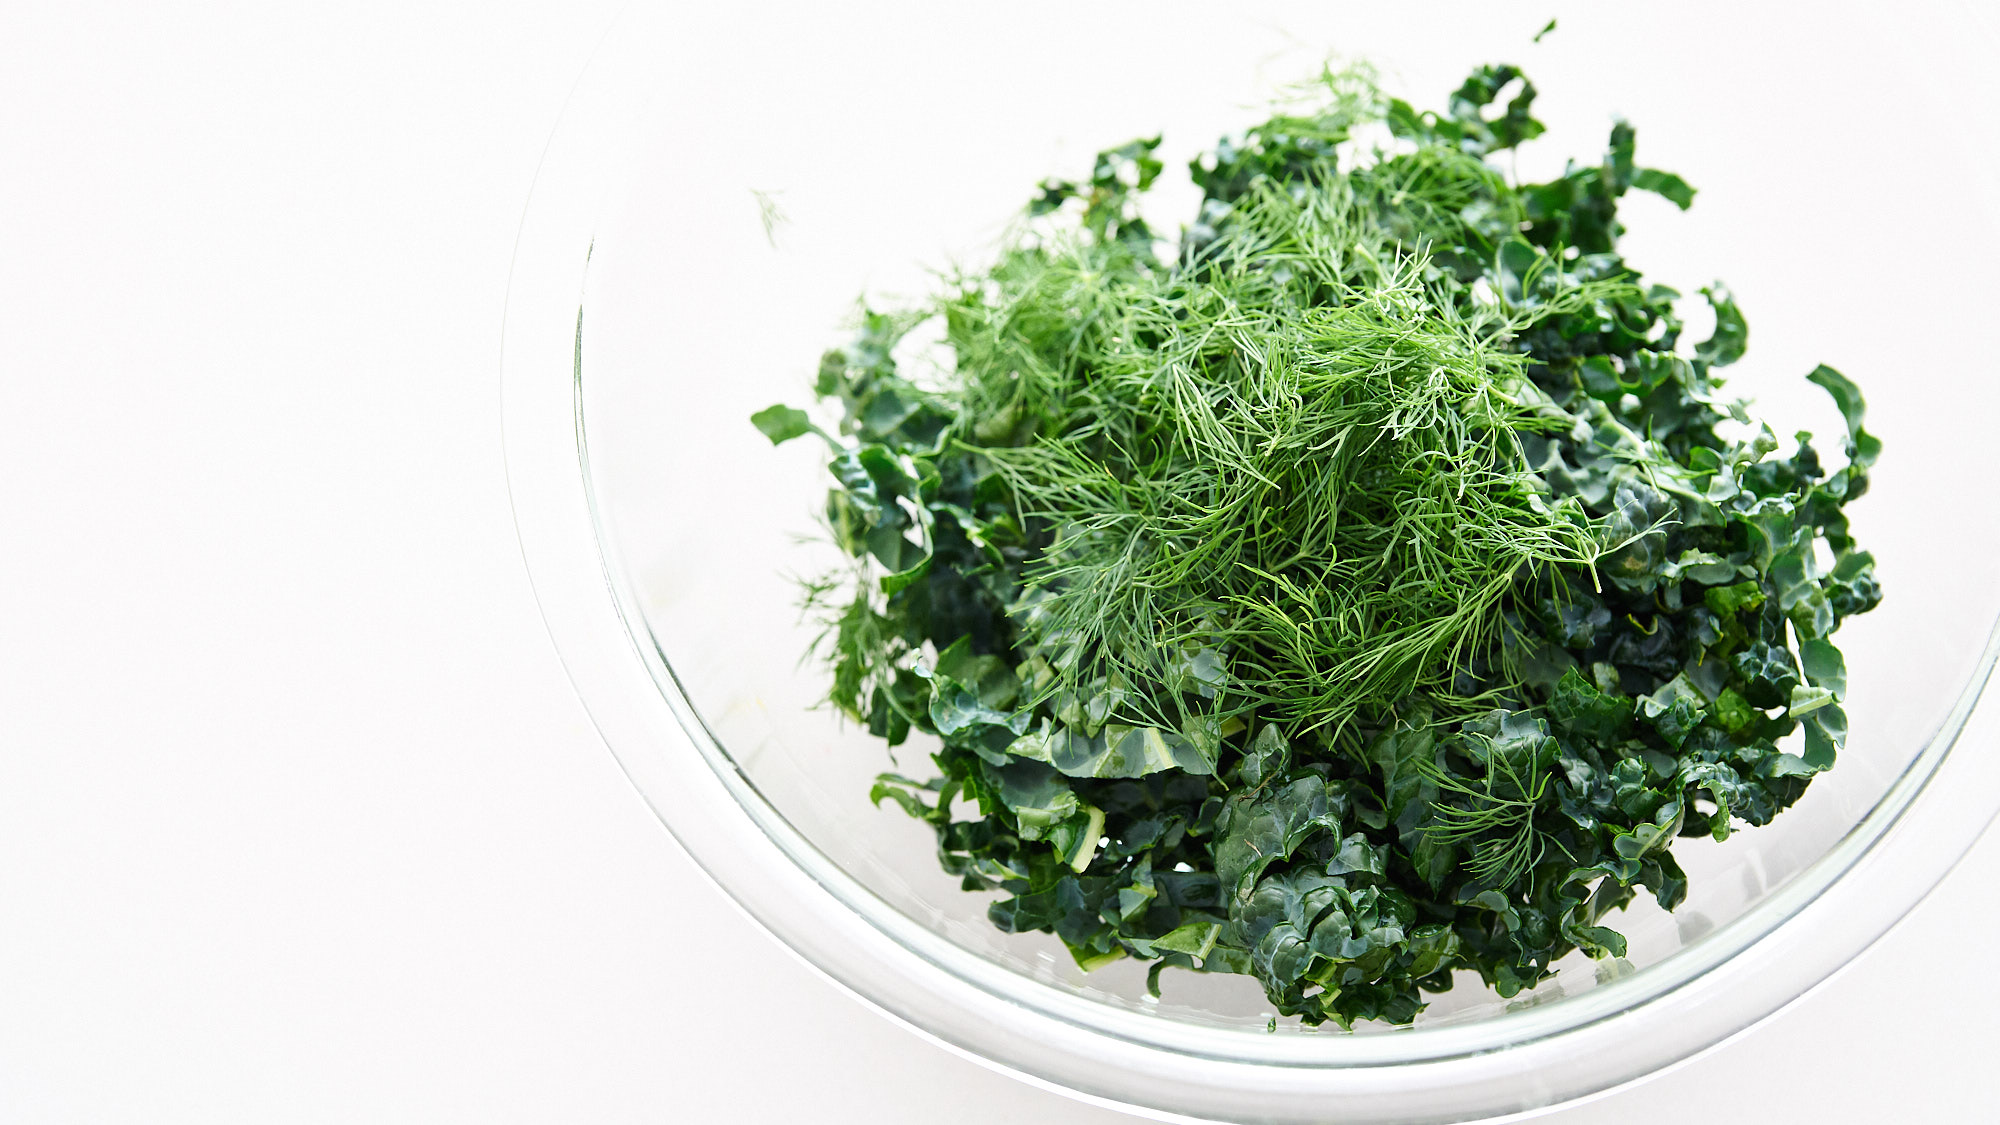 Fresh kale and dill for ramen salad.